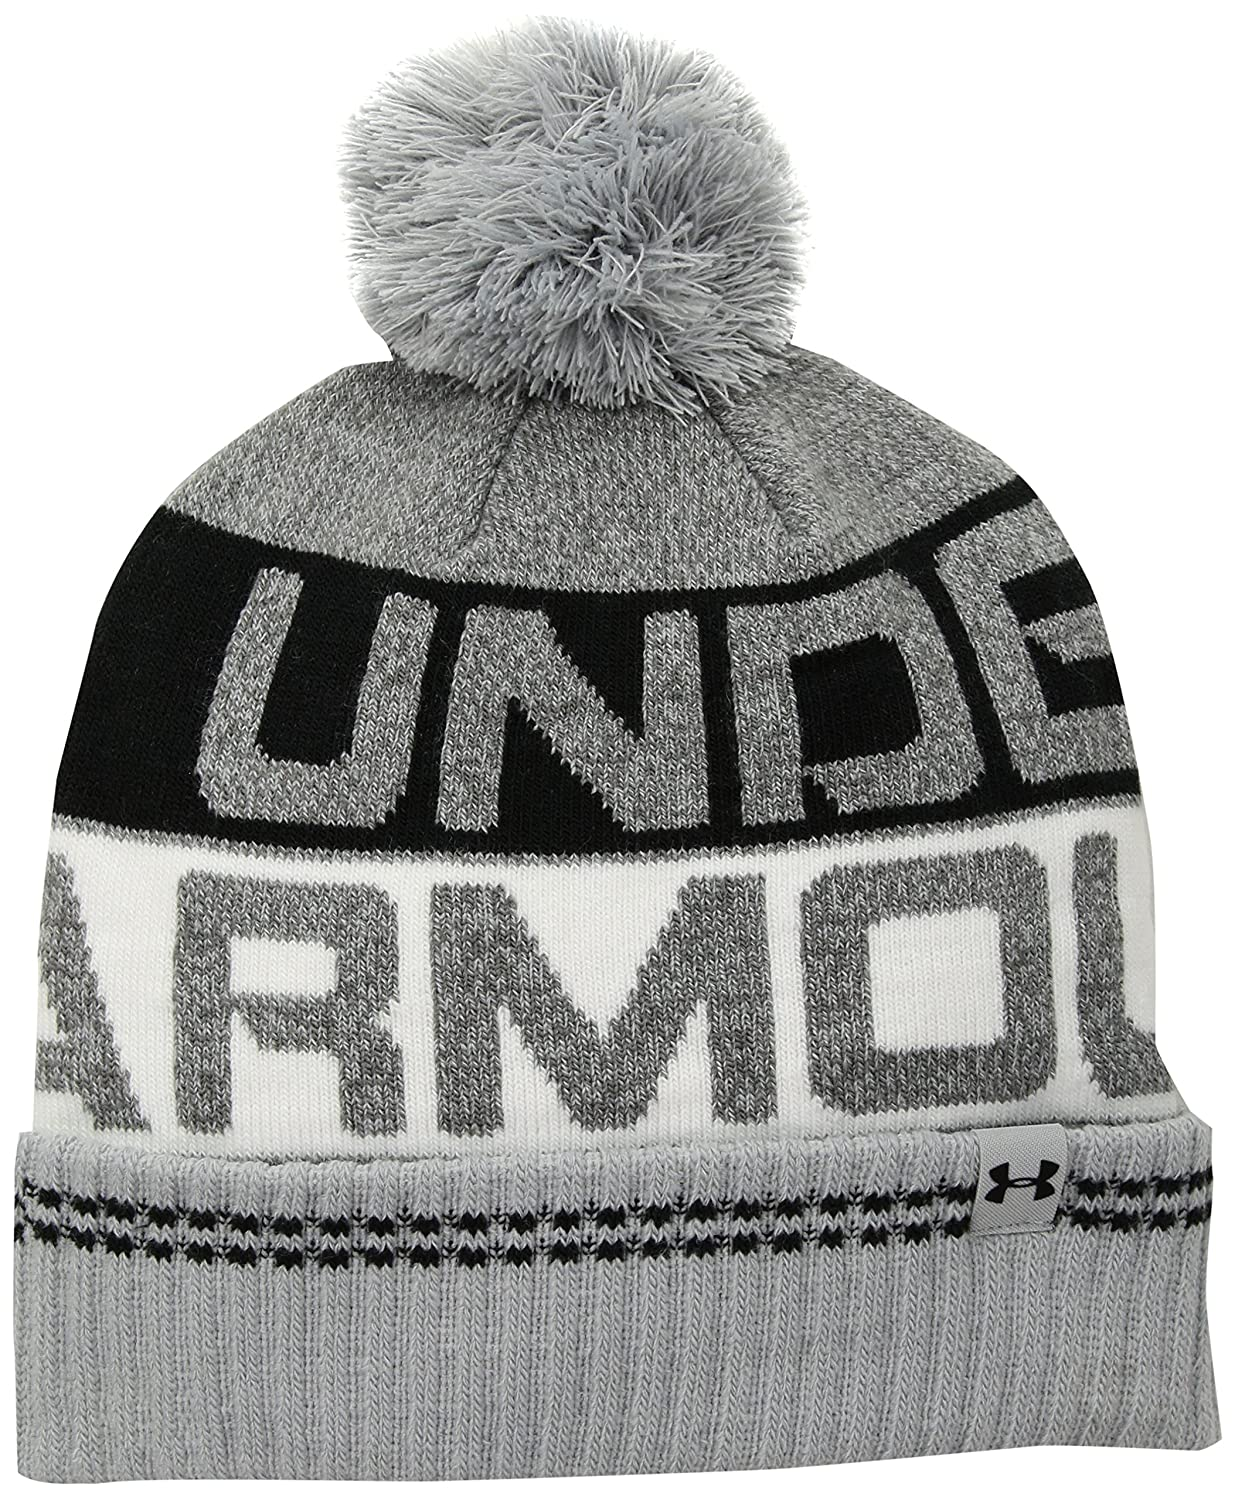 984908eaa2f Amazon.com  Under Armour Mens Retro Pom beanie 2.0  Sports   Outdoors